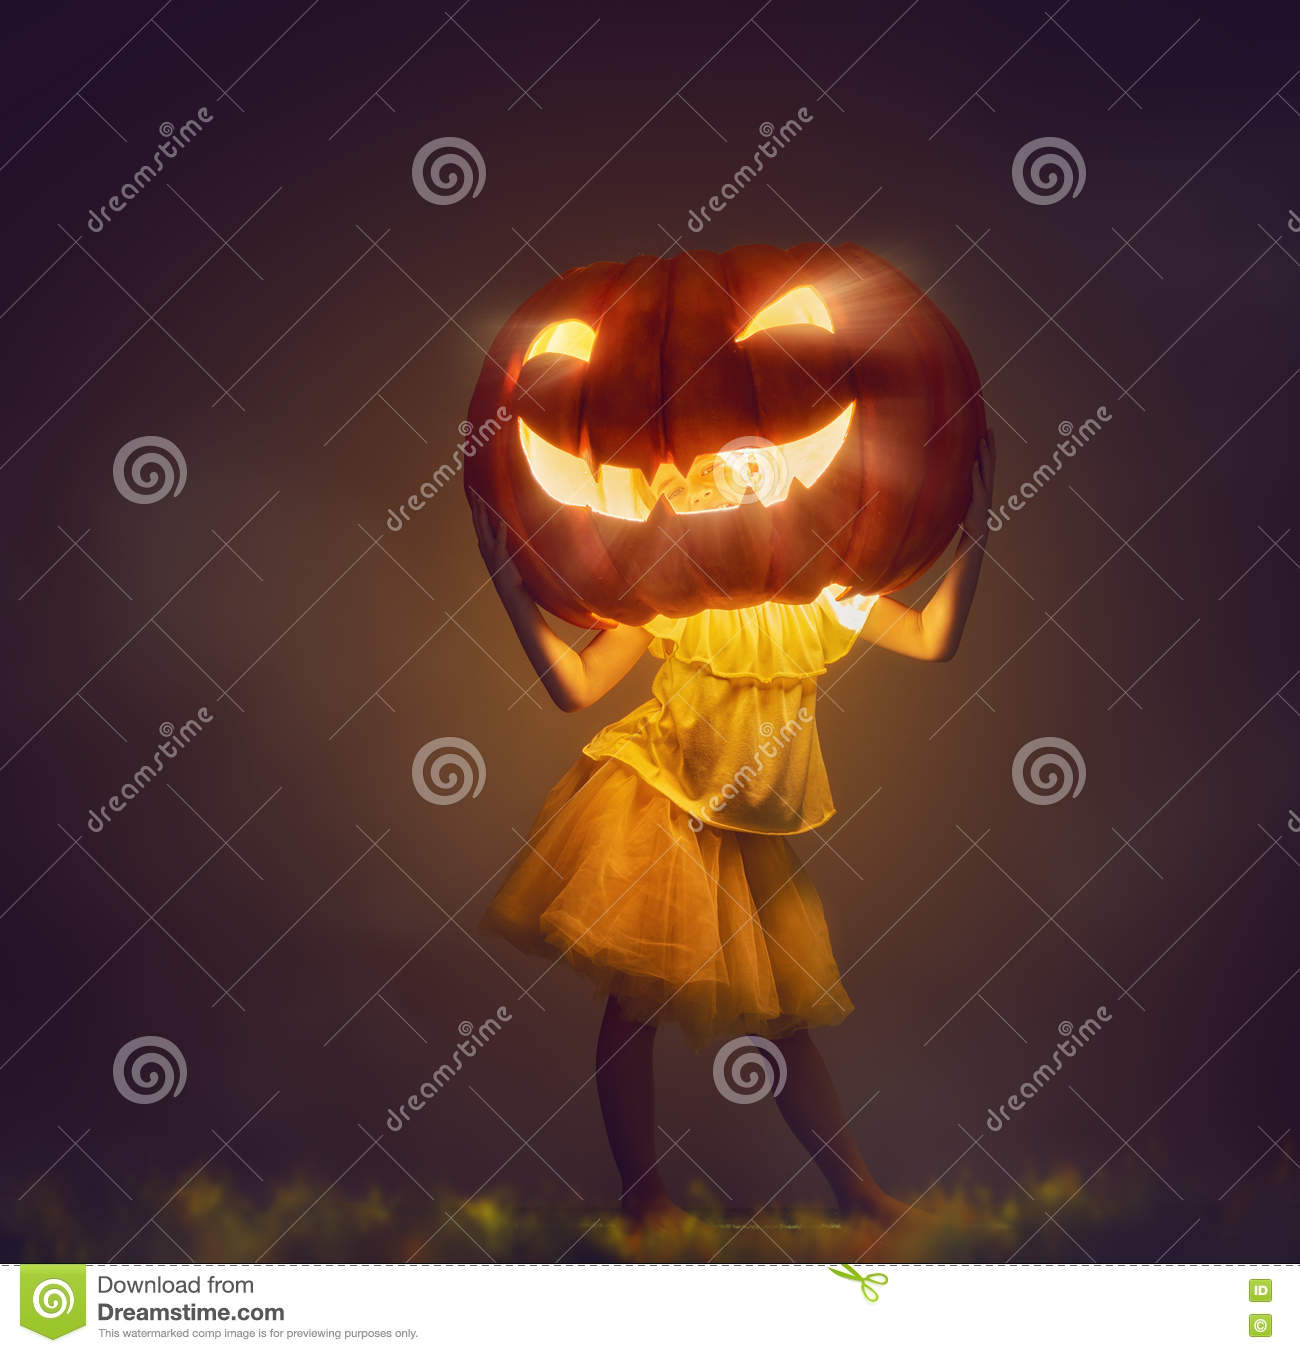 Kid with a big pumpkin head